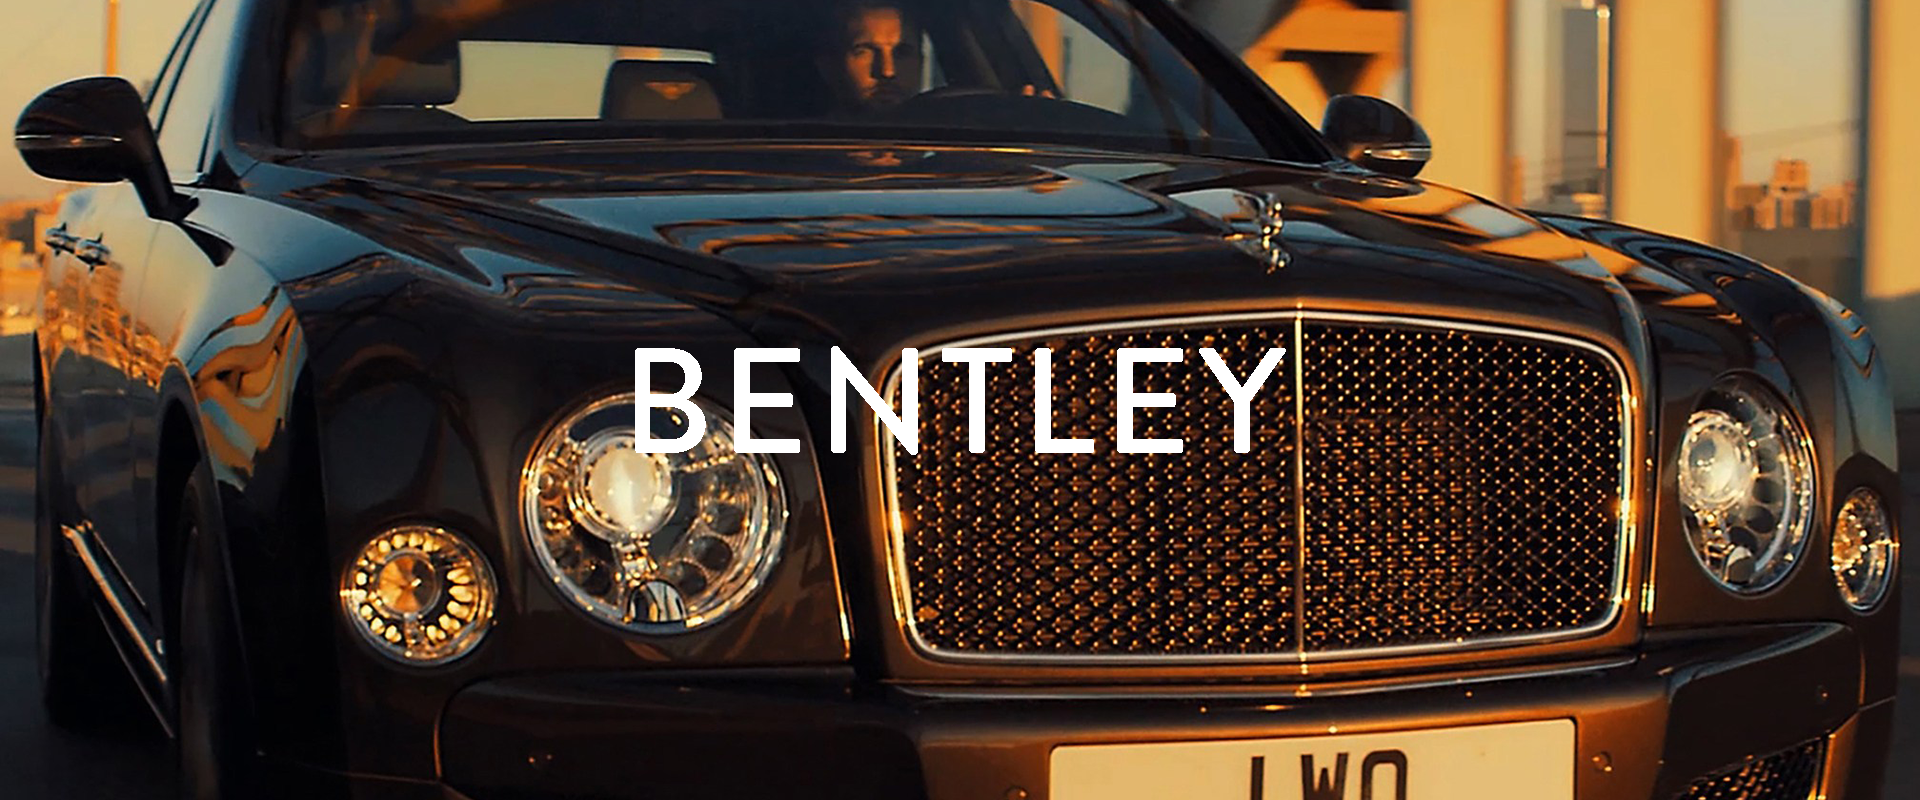 bentley c.png